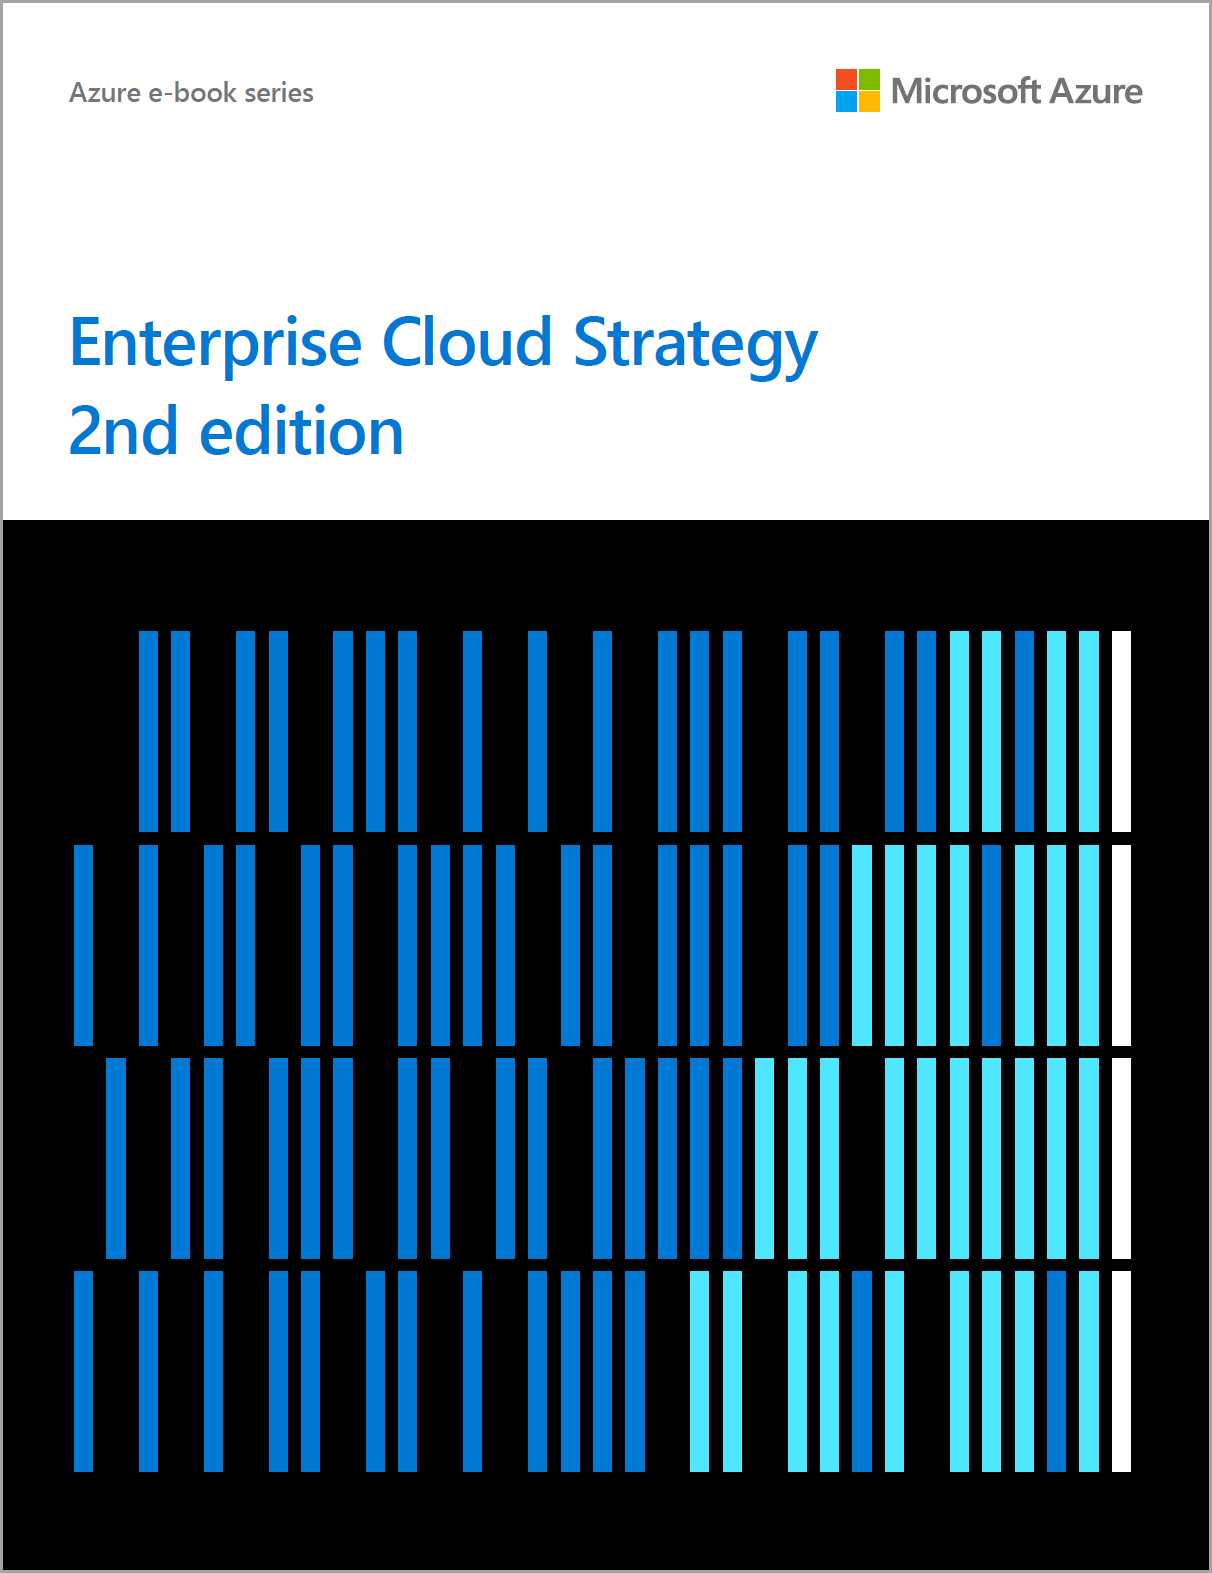 Enterprise cloud strategy e book microsoft azure this valuable asset for it and business leaders provides a comprehensive look at moving to the cloud as well as specific guidance on topics like fandeluxe Image collections